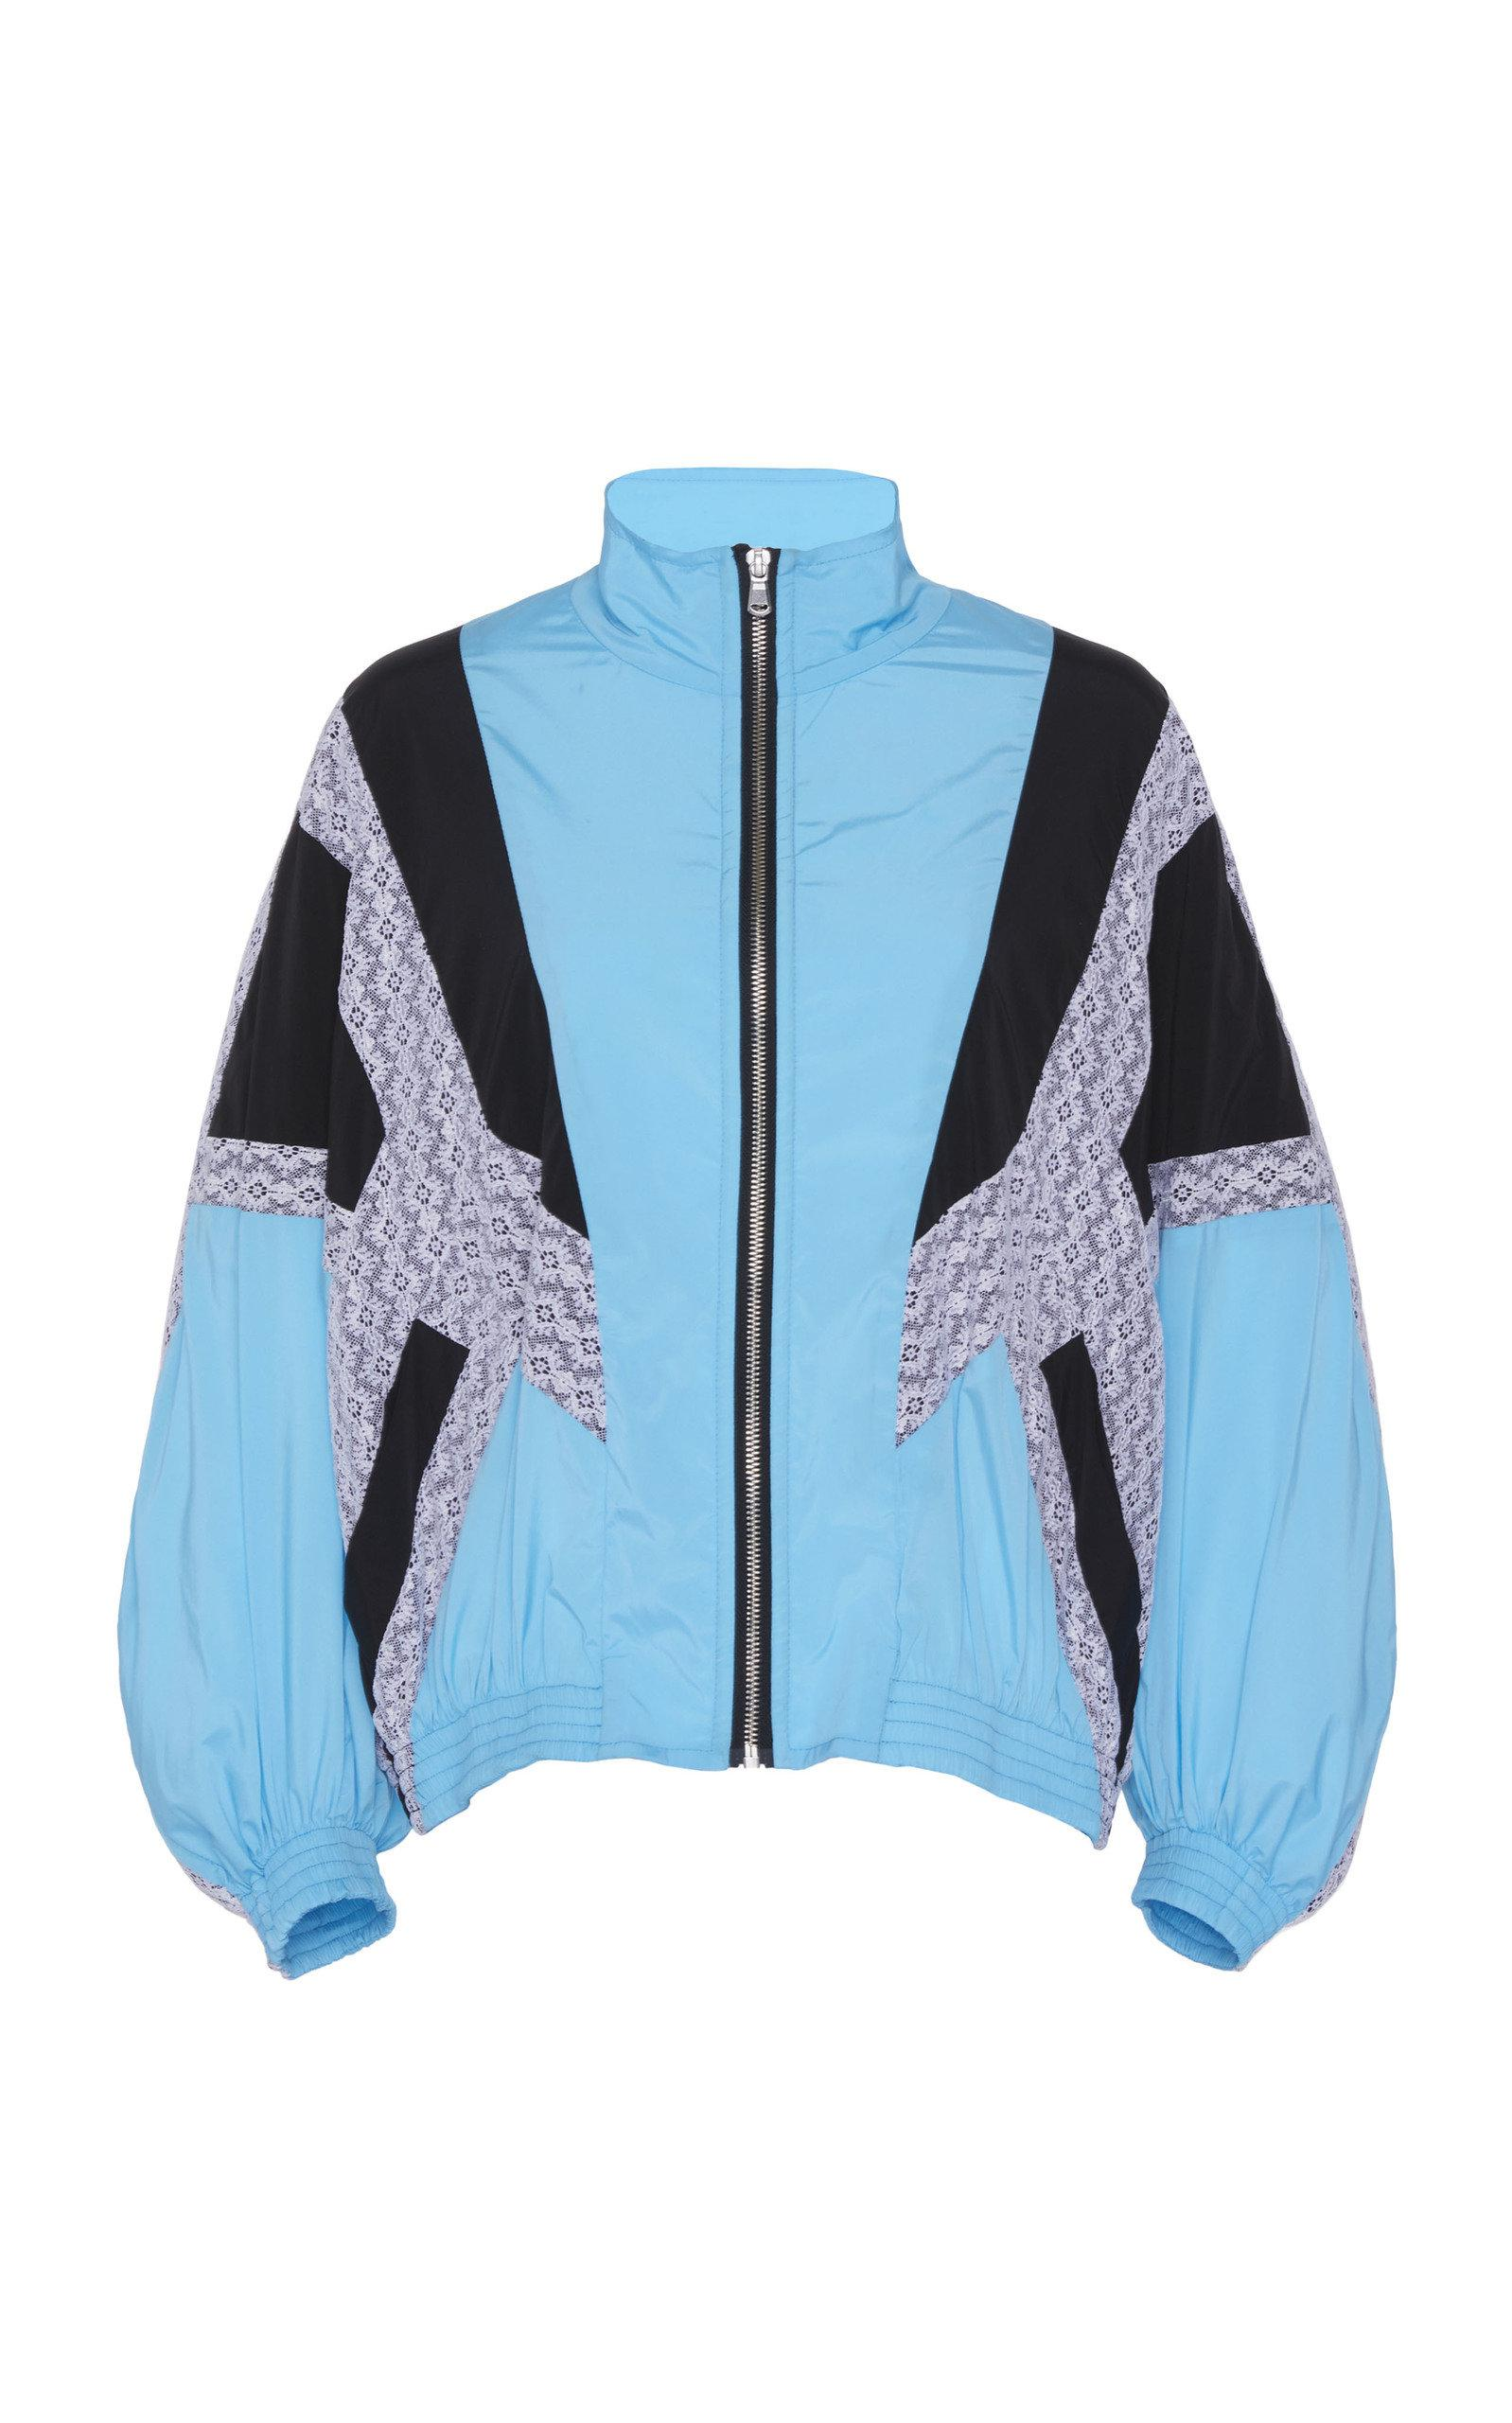 Blue Classic In Lyst Koche Patchwork Bomber Jacket 0OPNnk8wX